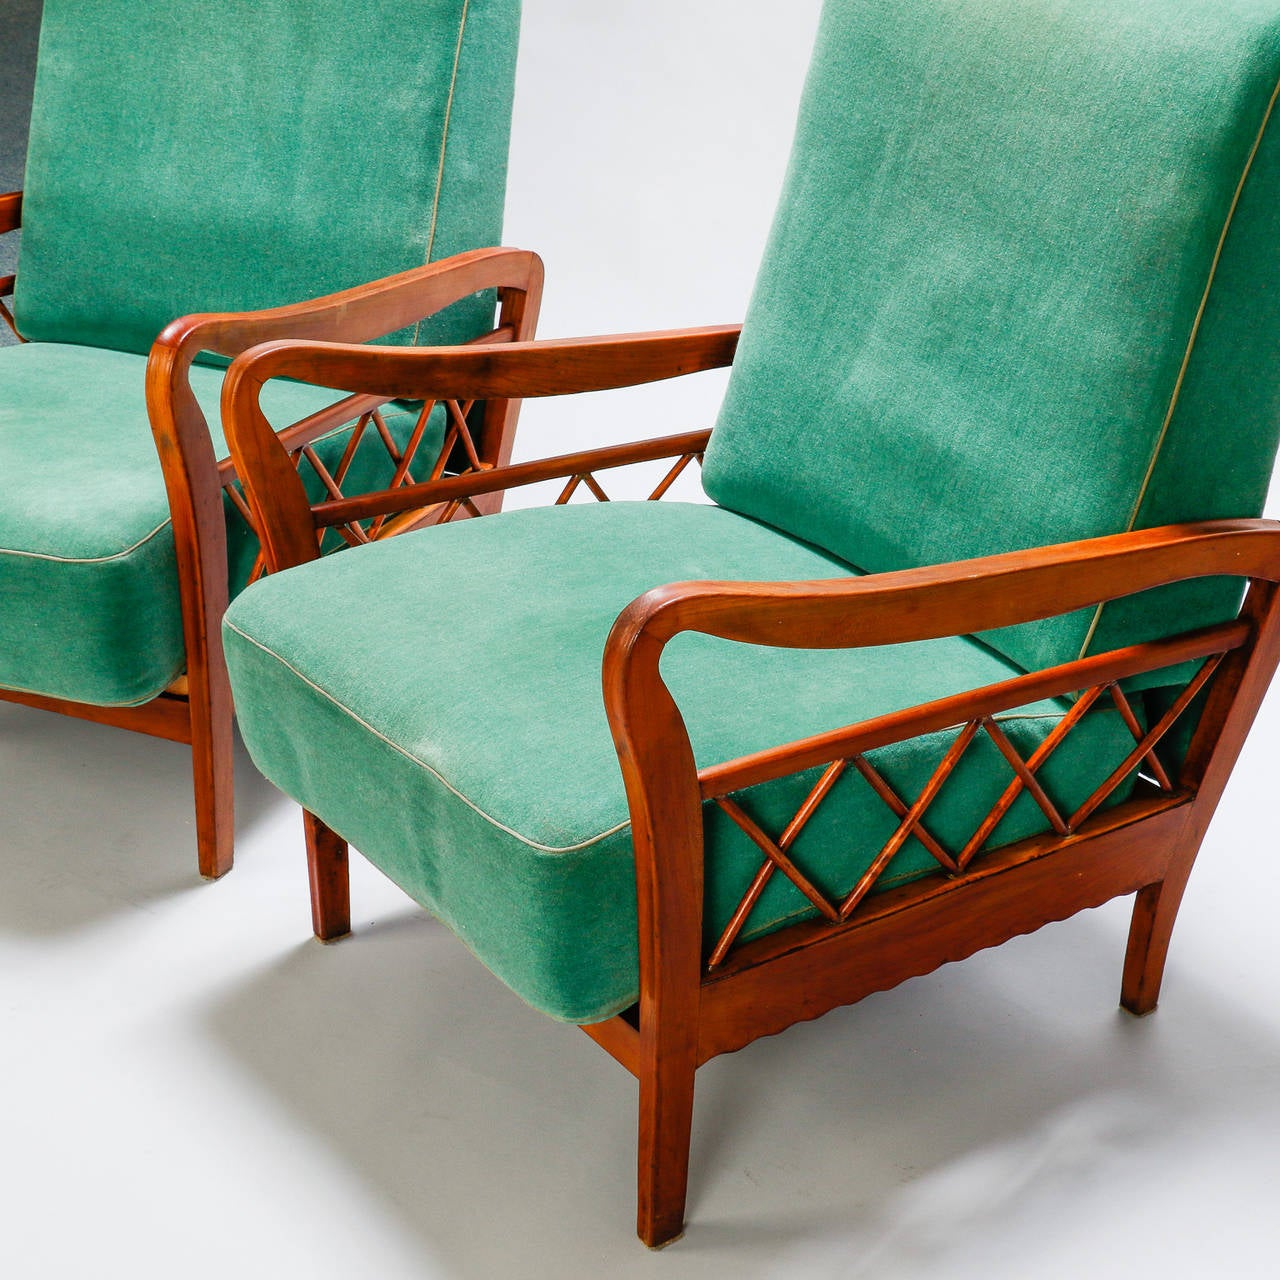 Found in Italy, this pair of circa 1960s lounge chairs feature lattice form details at the sides and curvy armrests. Seats are 15.5